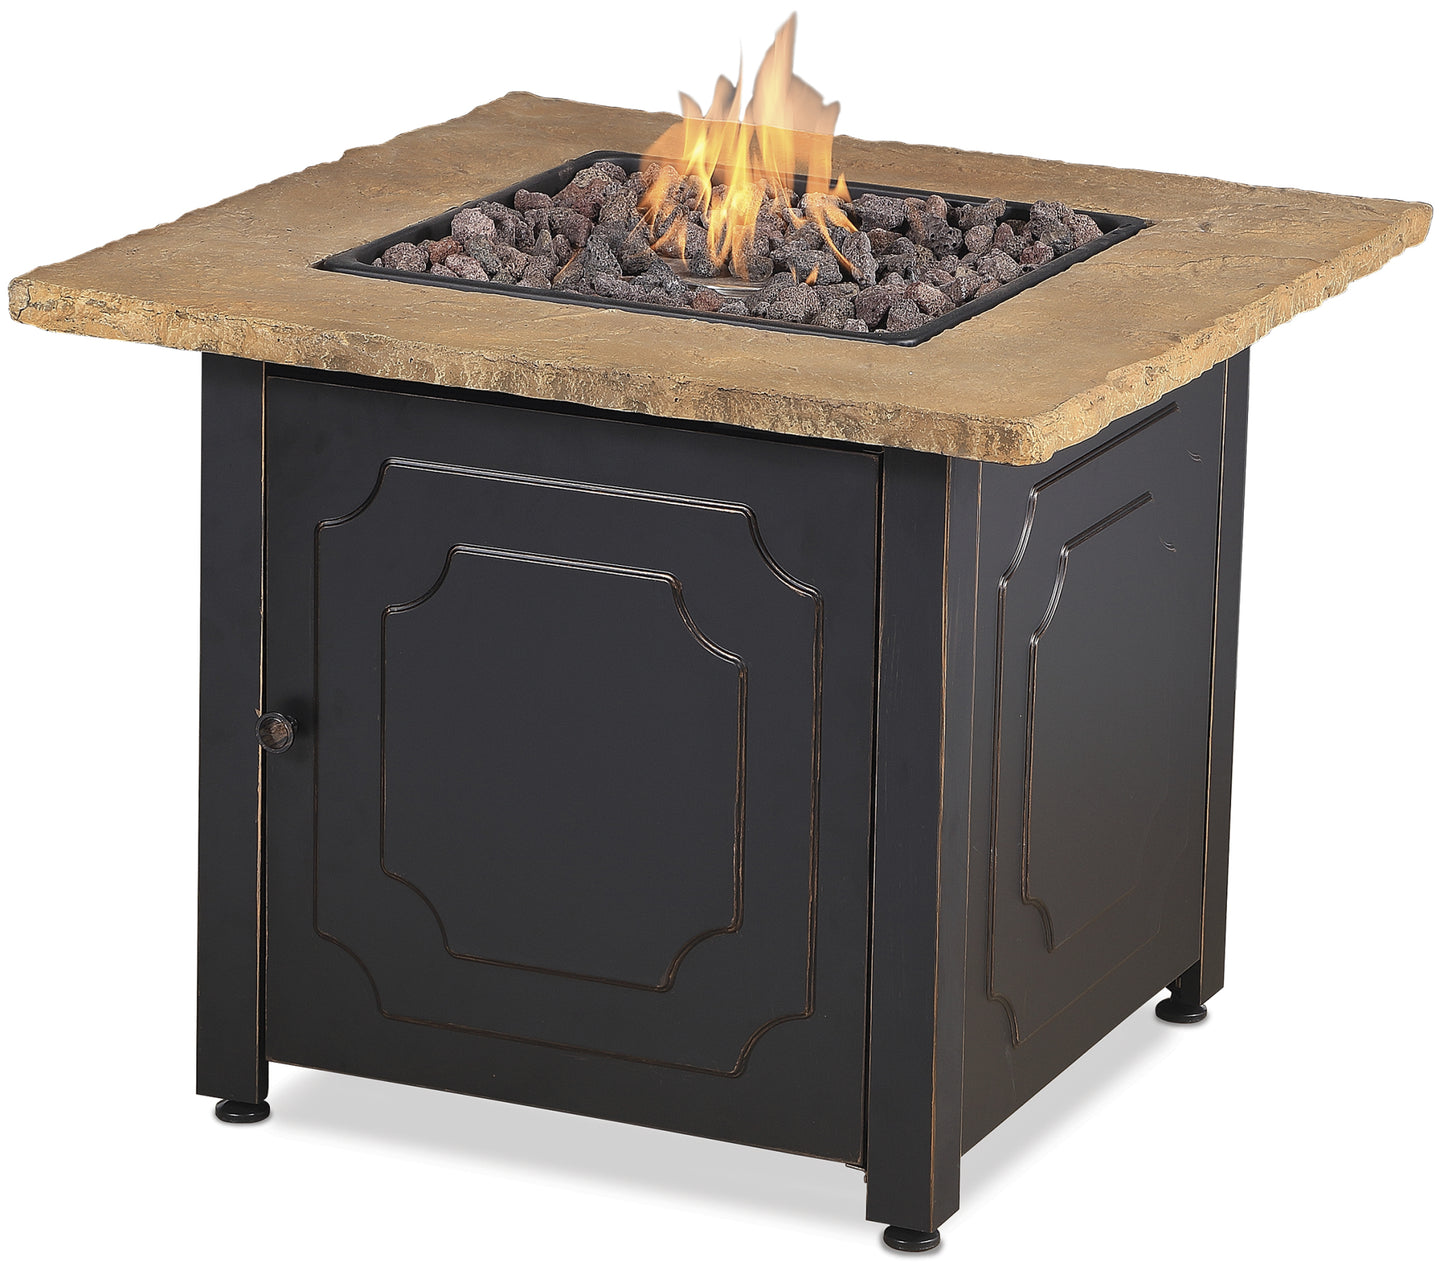 Low Prices on Square Outdoor Propane Fire Pits Endless Summer GAD1440SP!